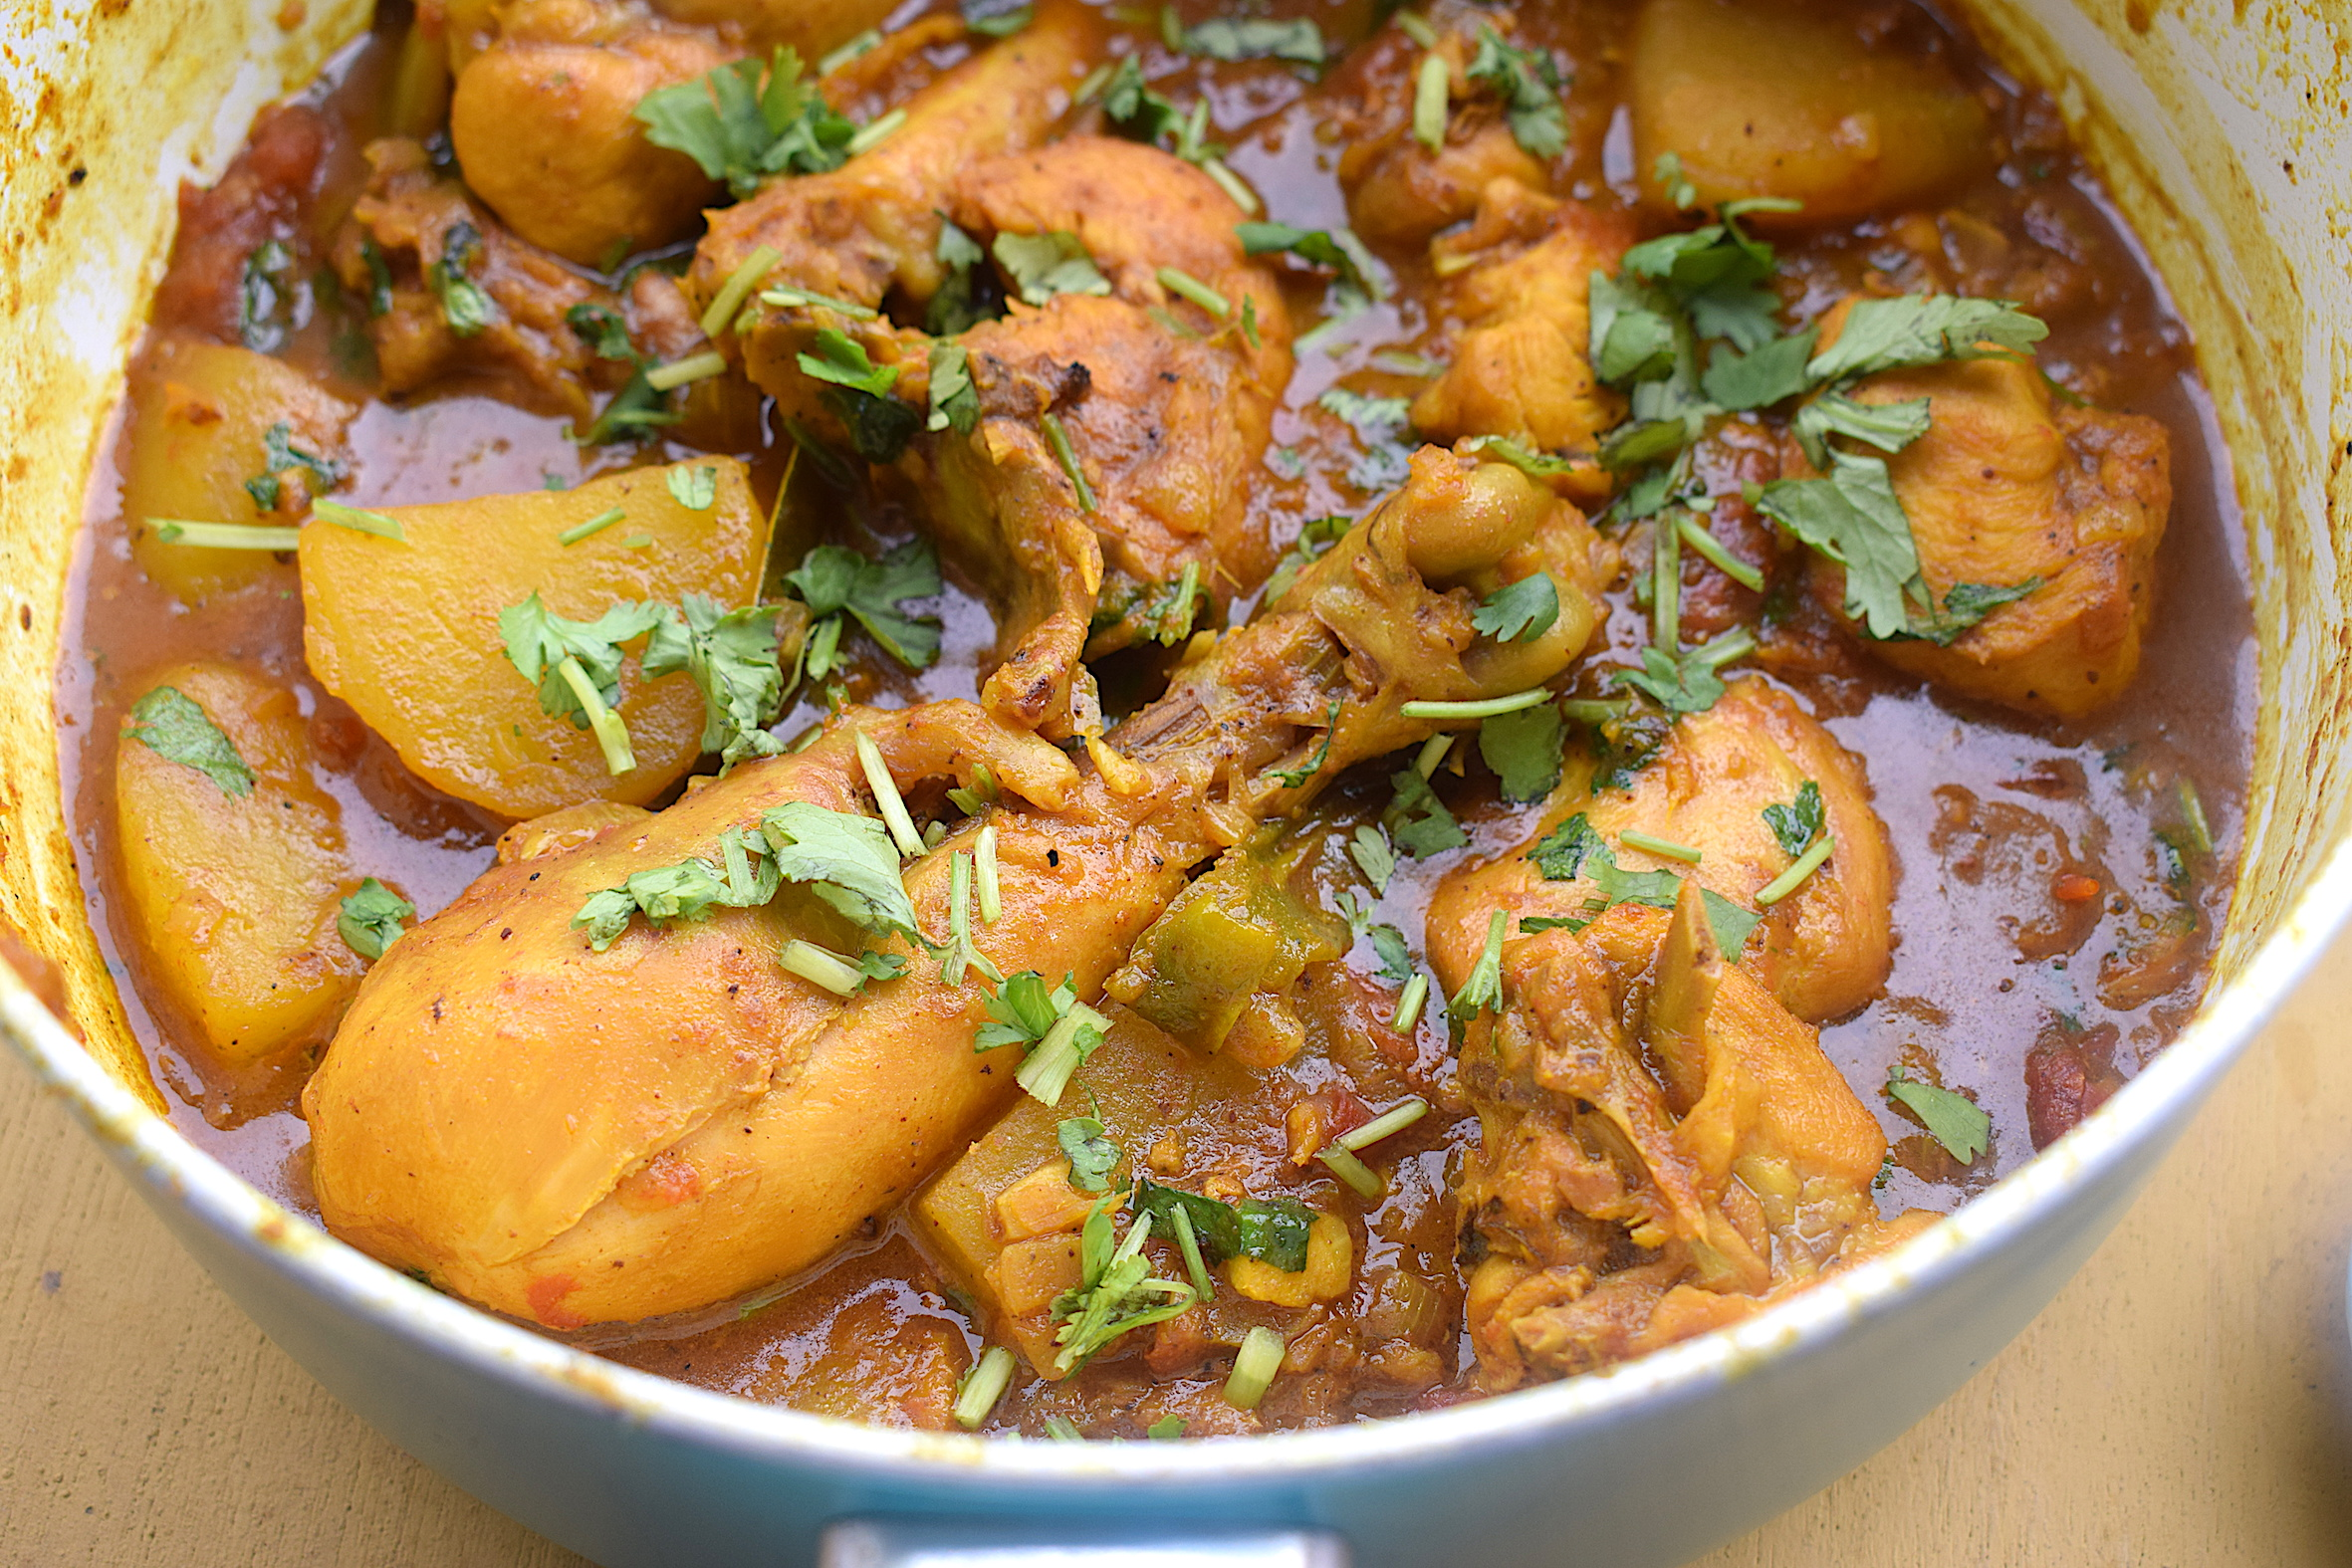 Assamese chicken curry